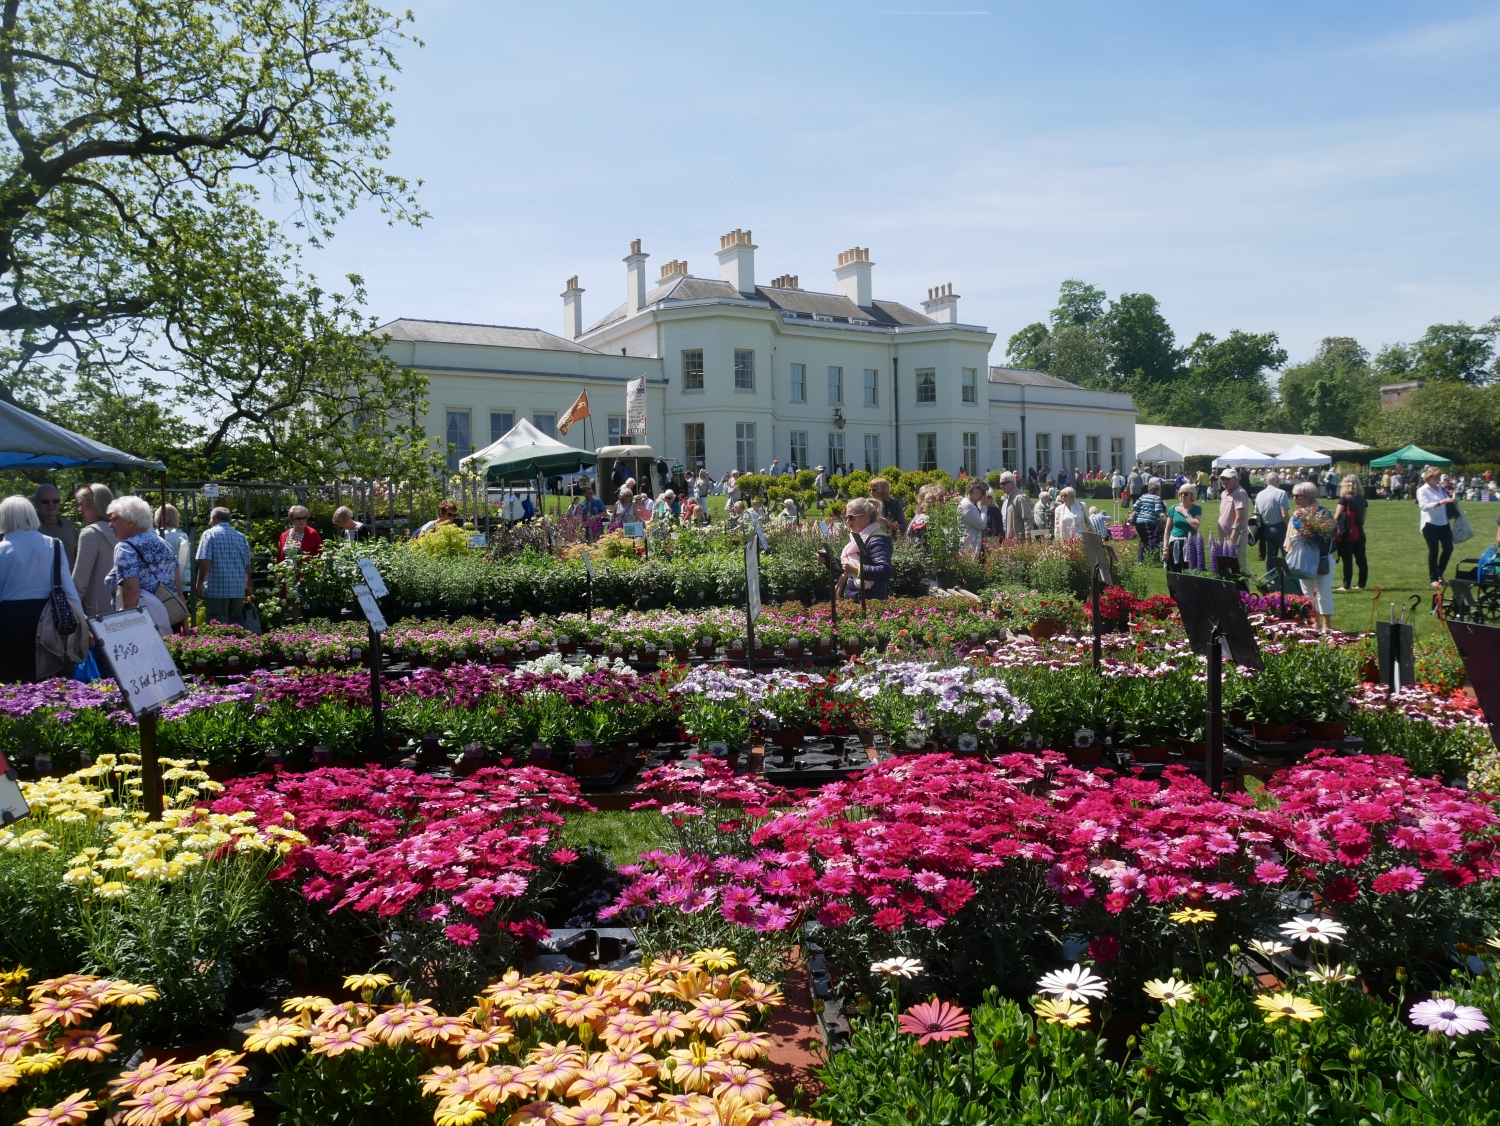 "national flower show - Hylands house, essex - Friday 17th - Sunday 19th May 2019We'll be making our debut at the National Flower Show this year and we can't wait for all the home and garden inspo (must remember to take my hayfever tablets though)!""Hylands House & Estate will burst into a gardening extravaganza as the National Flower Show returns for its fifth year. The wonderful three day event will be officially opened by TV Gardener Carol Klein on Friday 17th May 2019 and will celebrate the very best of gardening, home and lifestyle.""Adult tickets start at just £12 - get yours here now."